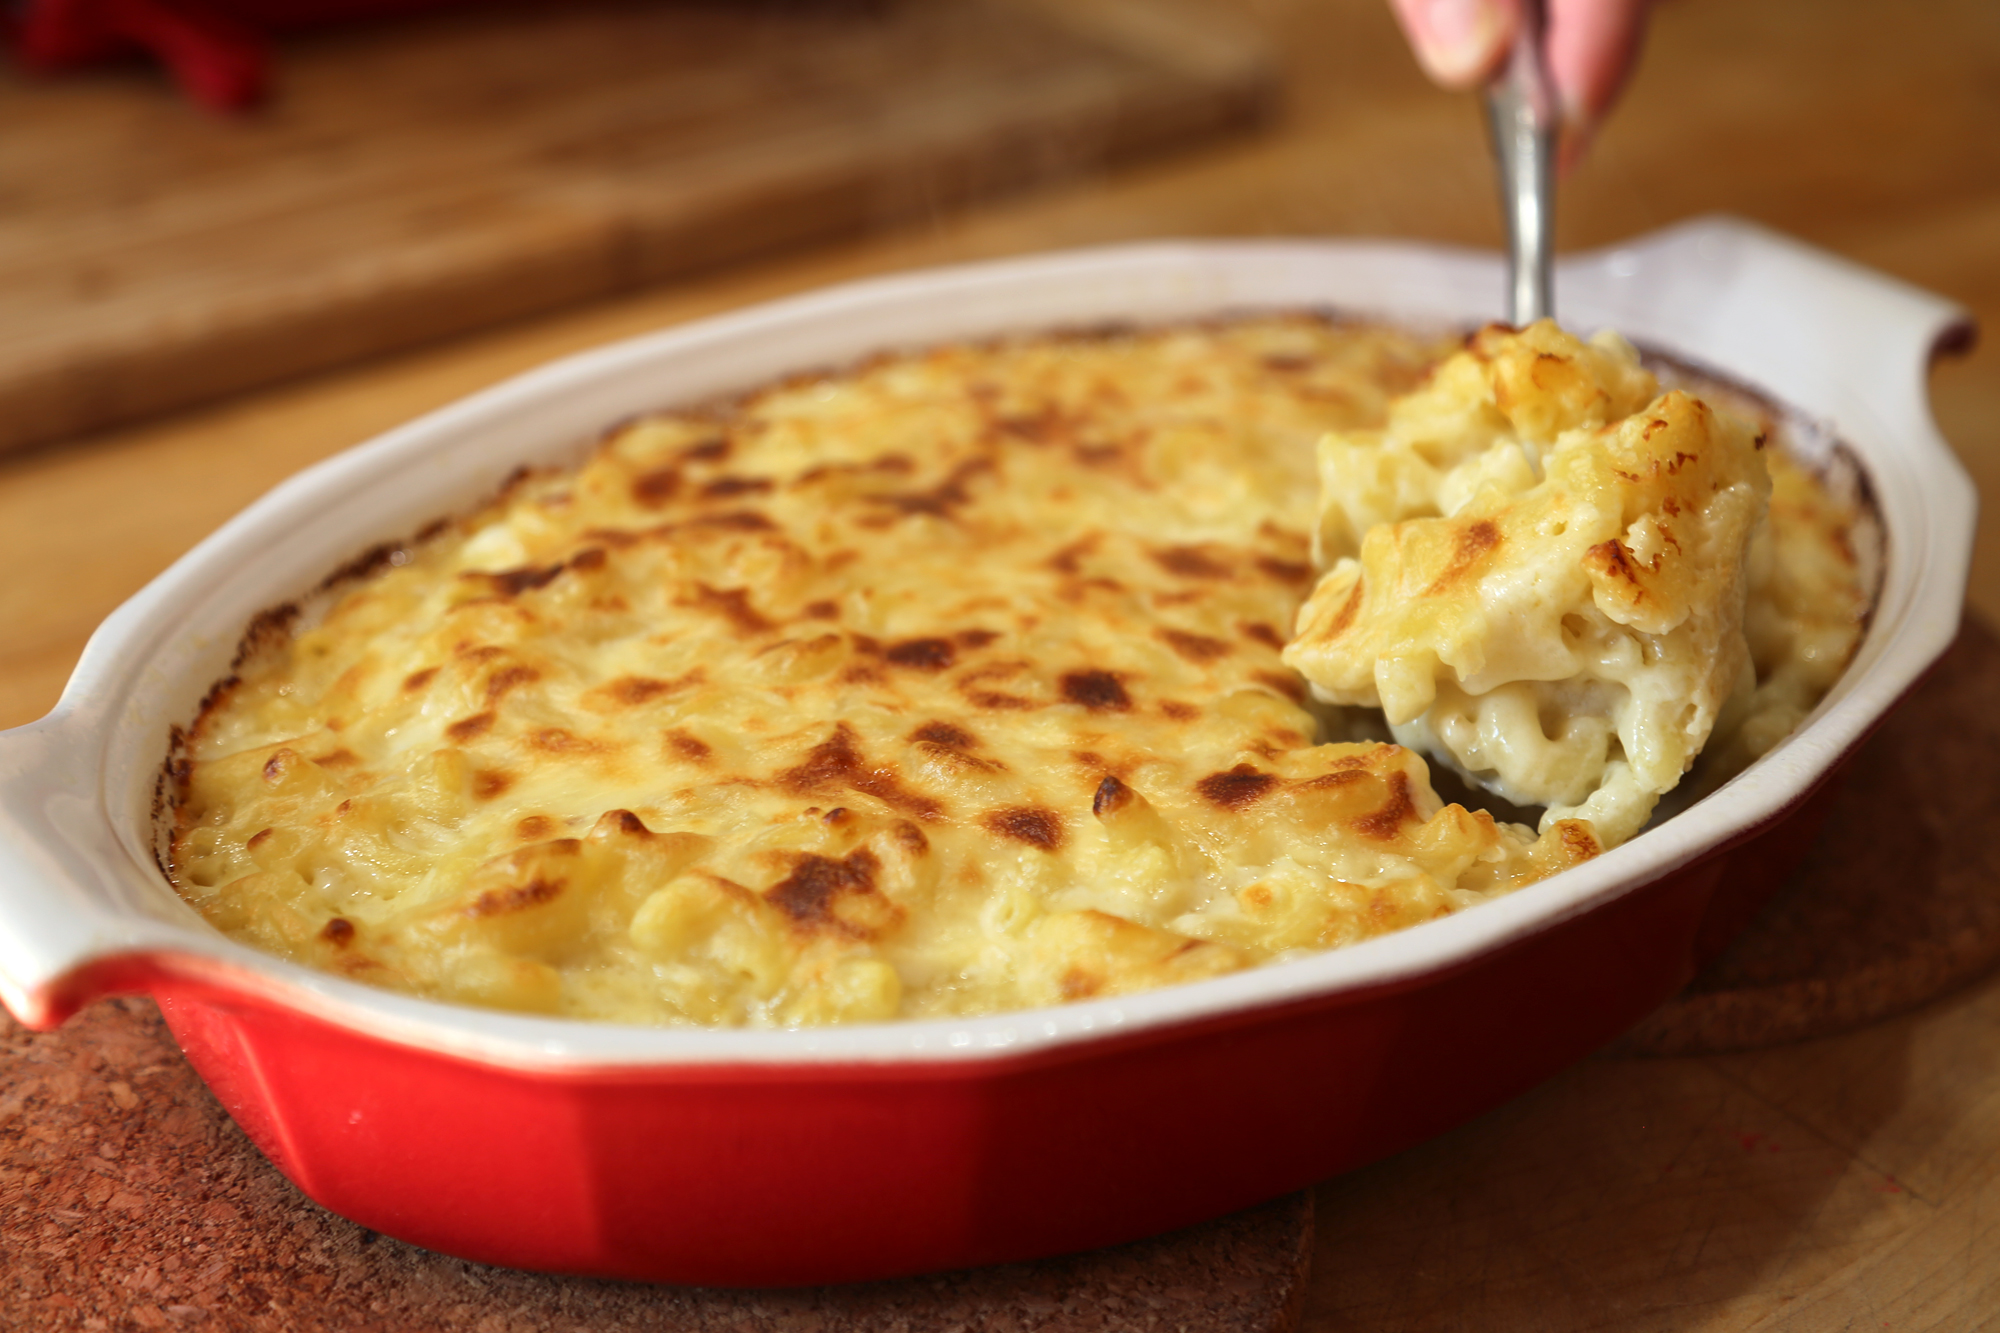 Get Your Super Bowl On: Homemade Mac and Cheese, Please!